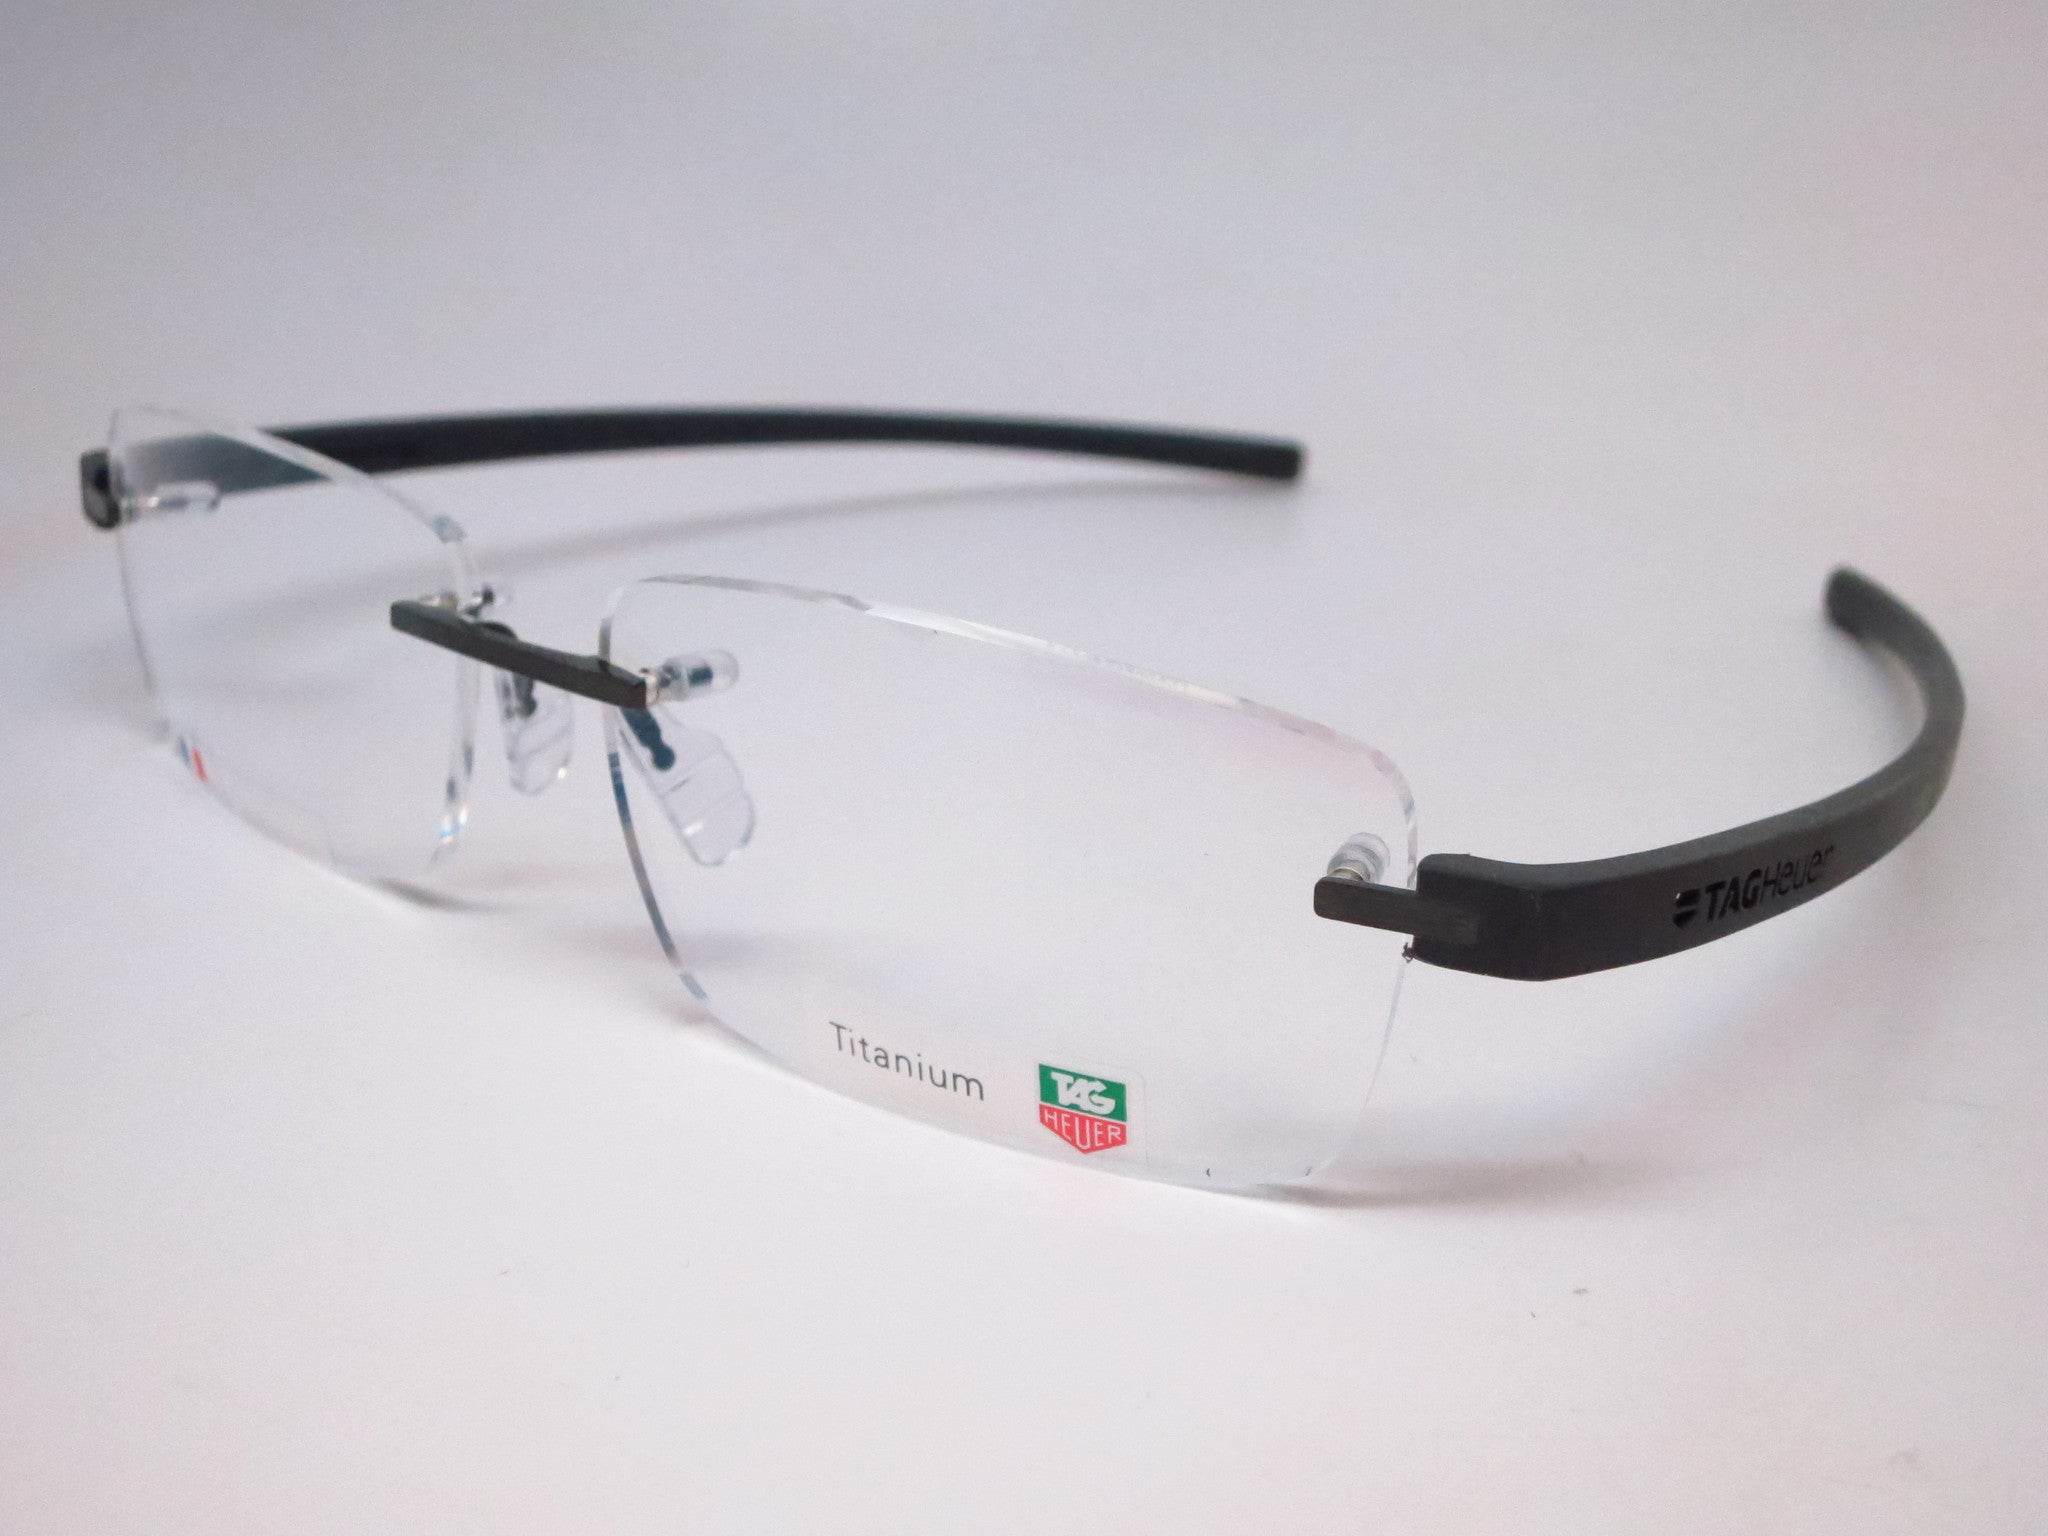 bc410bd45f Tag Heuer TH 3942 005 Black Gunmetal Reflex 3 Rimless Eyeglasses ...